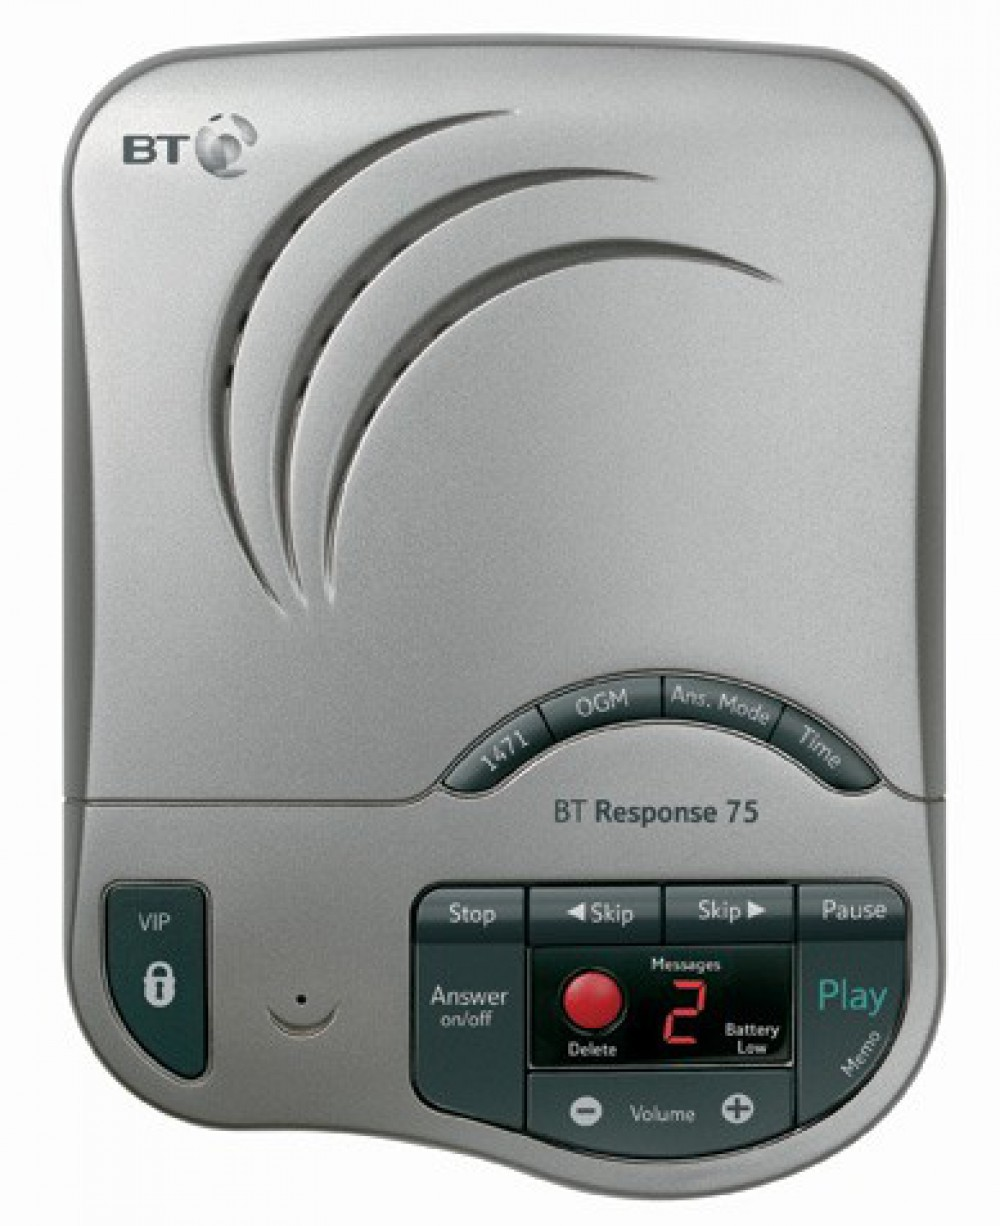 BT Response 75+ Answering Machine